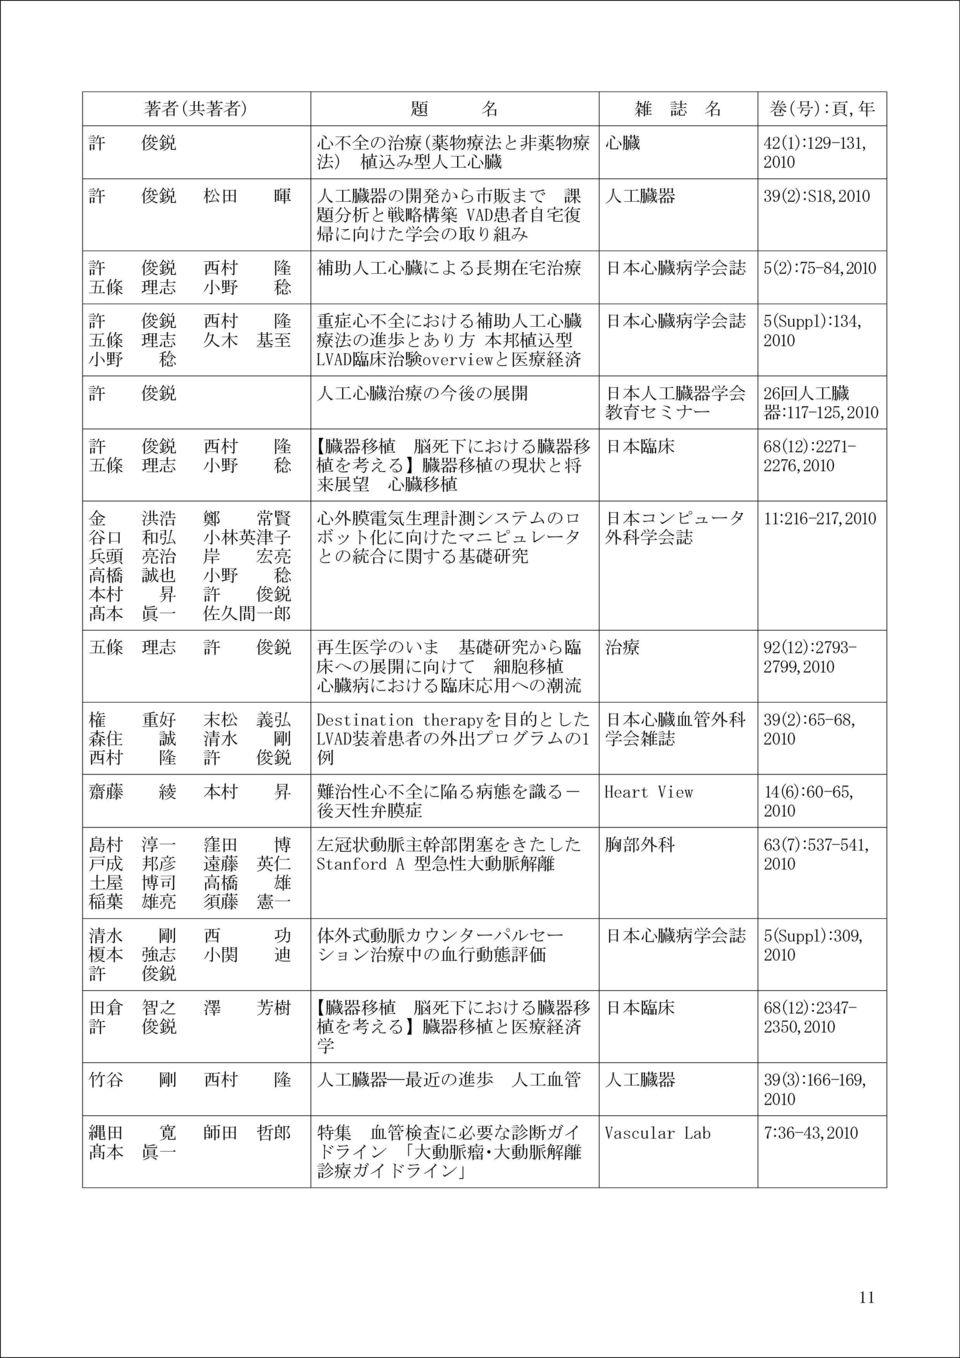 LVAD 臨 床 治 験 overviewと 医 療 経 済 日 本 心 臓 病 学 会 誌 5(Suppl):134, 2010 許 俊 鋭 人 工 心 臓 治 療 の 今 後 の 展 開 日 本 人 工 臓 器 学 会 教 育 セミナー 26 回 人 工 臓 器 :117-125,2010 許 俊 鋭 西 村 隆 五 條 理 志 臓 器 移 植 脳 死 下 における 臓 器 移 植 を 考